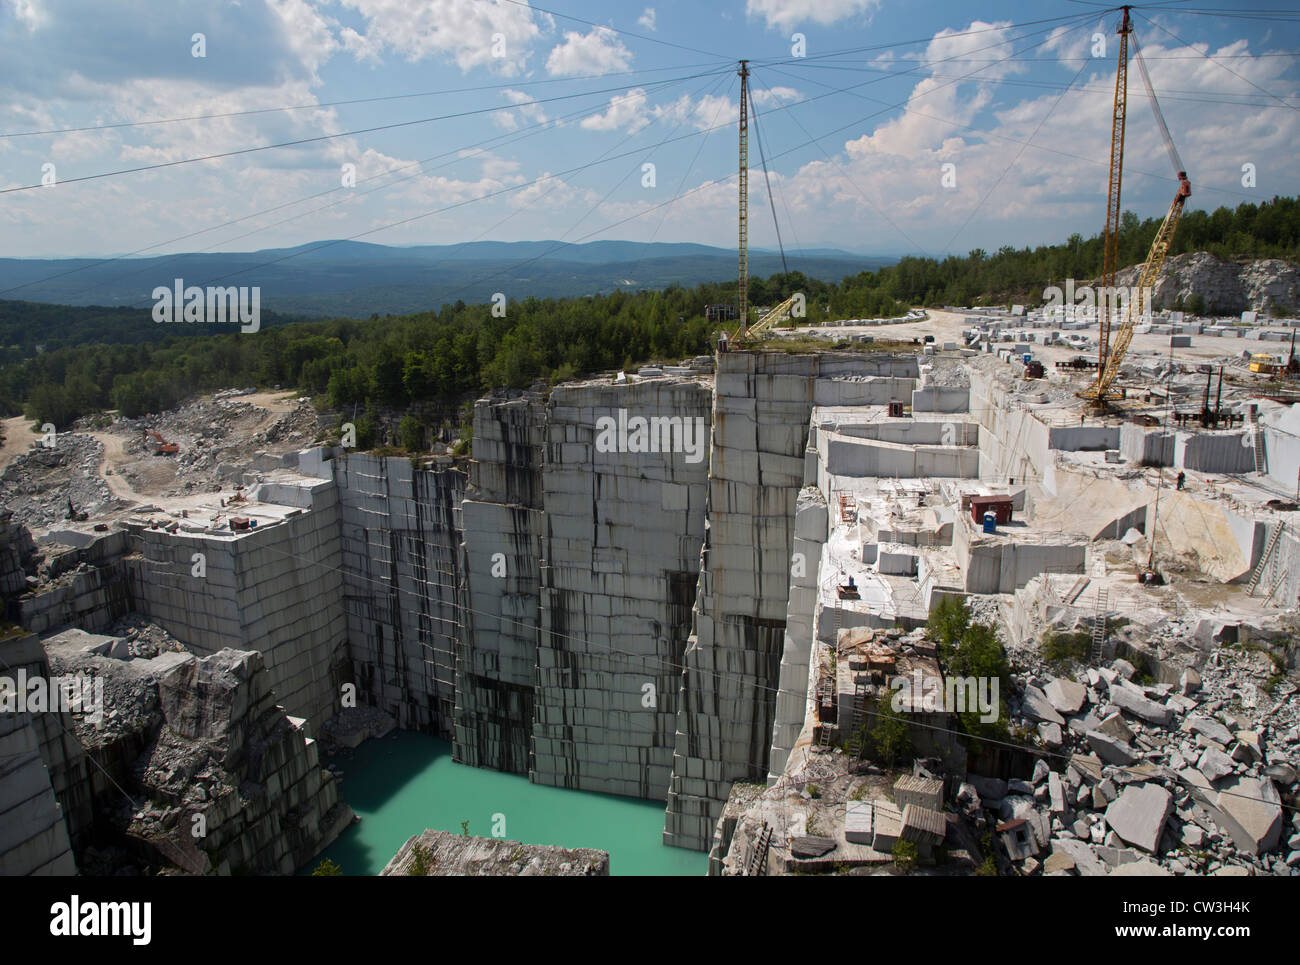 Graniteville, Vermont - The Rock of Ages corporation's granite quarry. - Stock Image